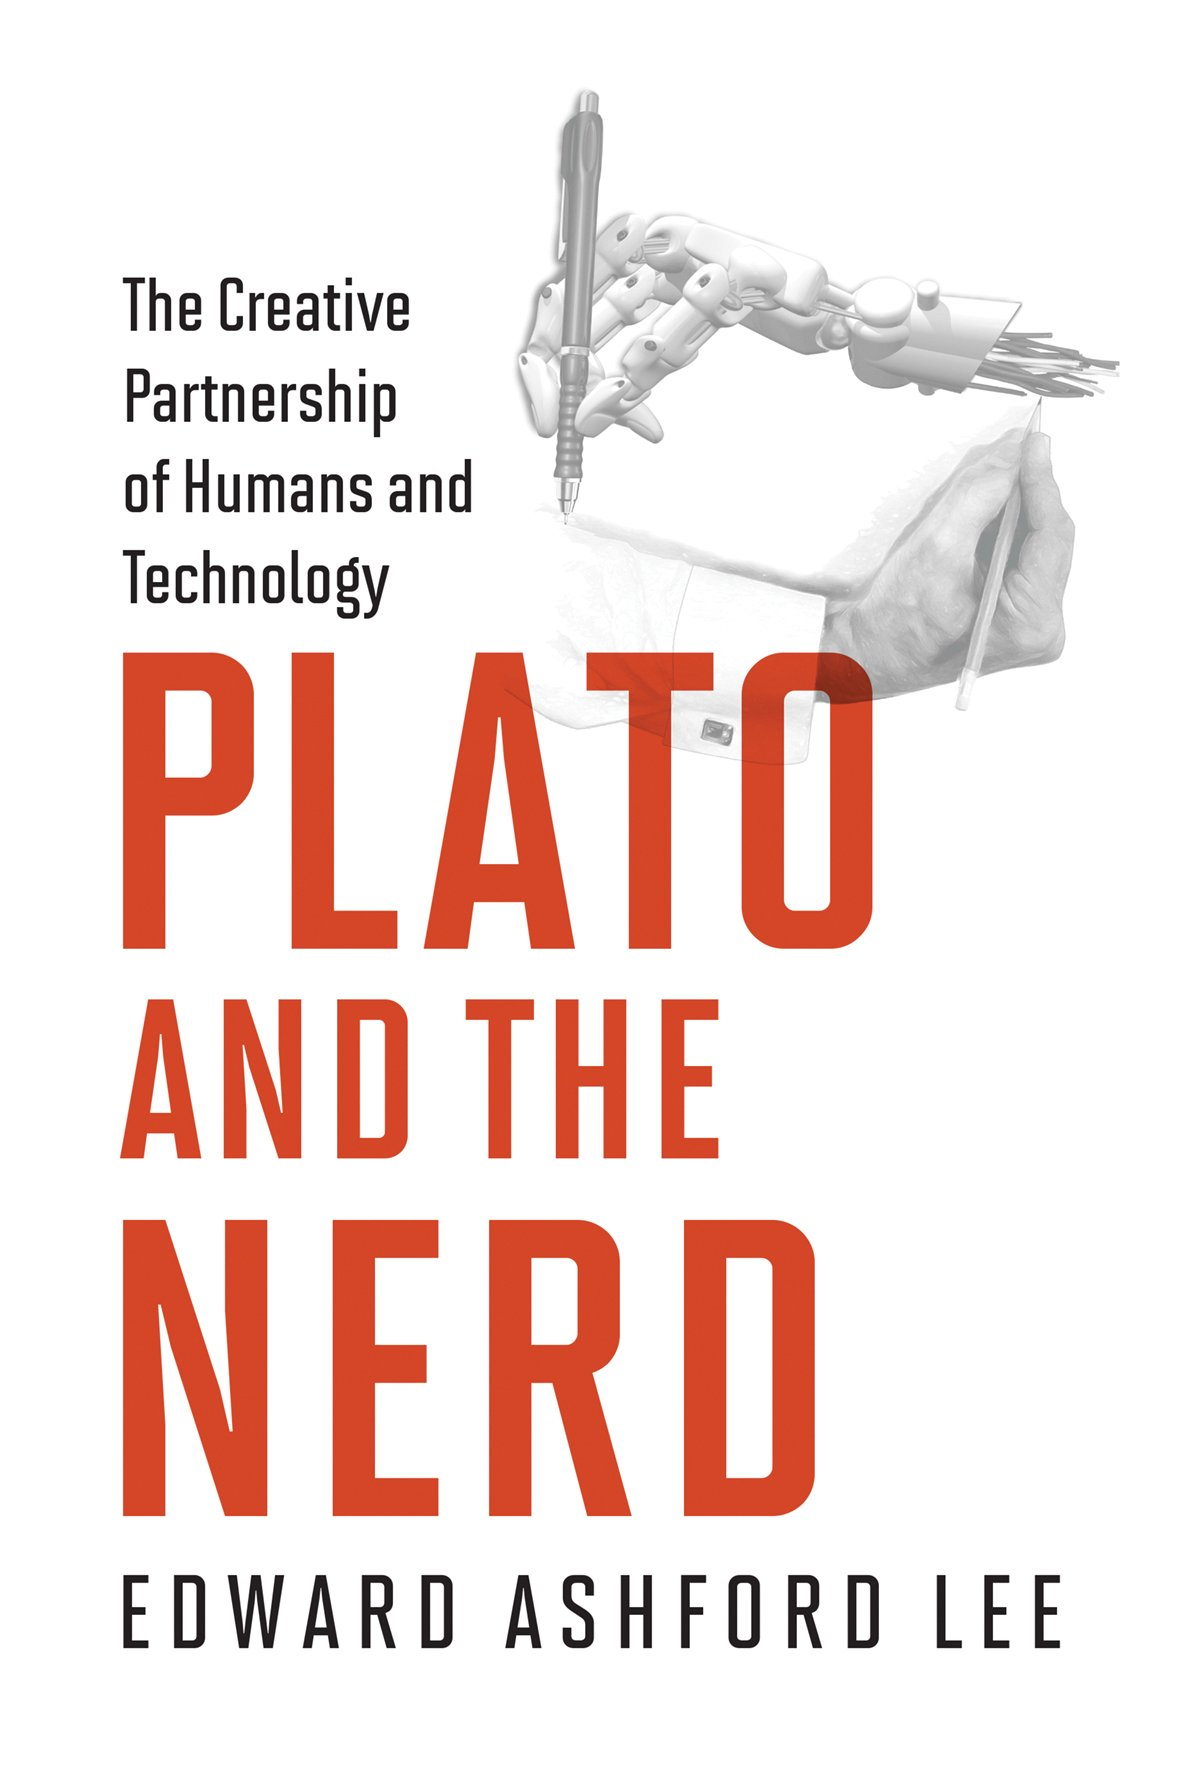 Plato and the Nerd : The Creative Partnership of Humans and Technology (Anglais) Relié – 25 août 2017 Edward Ashford Lee MIT Press 0262036487 Science/Mathematics